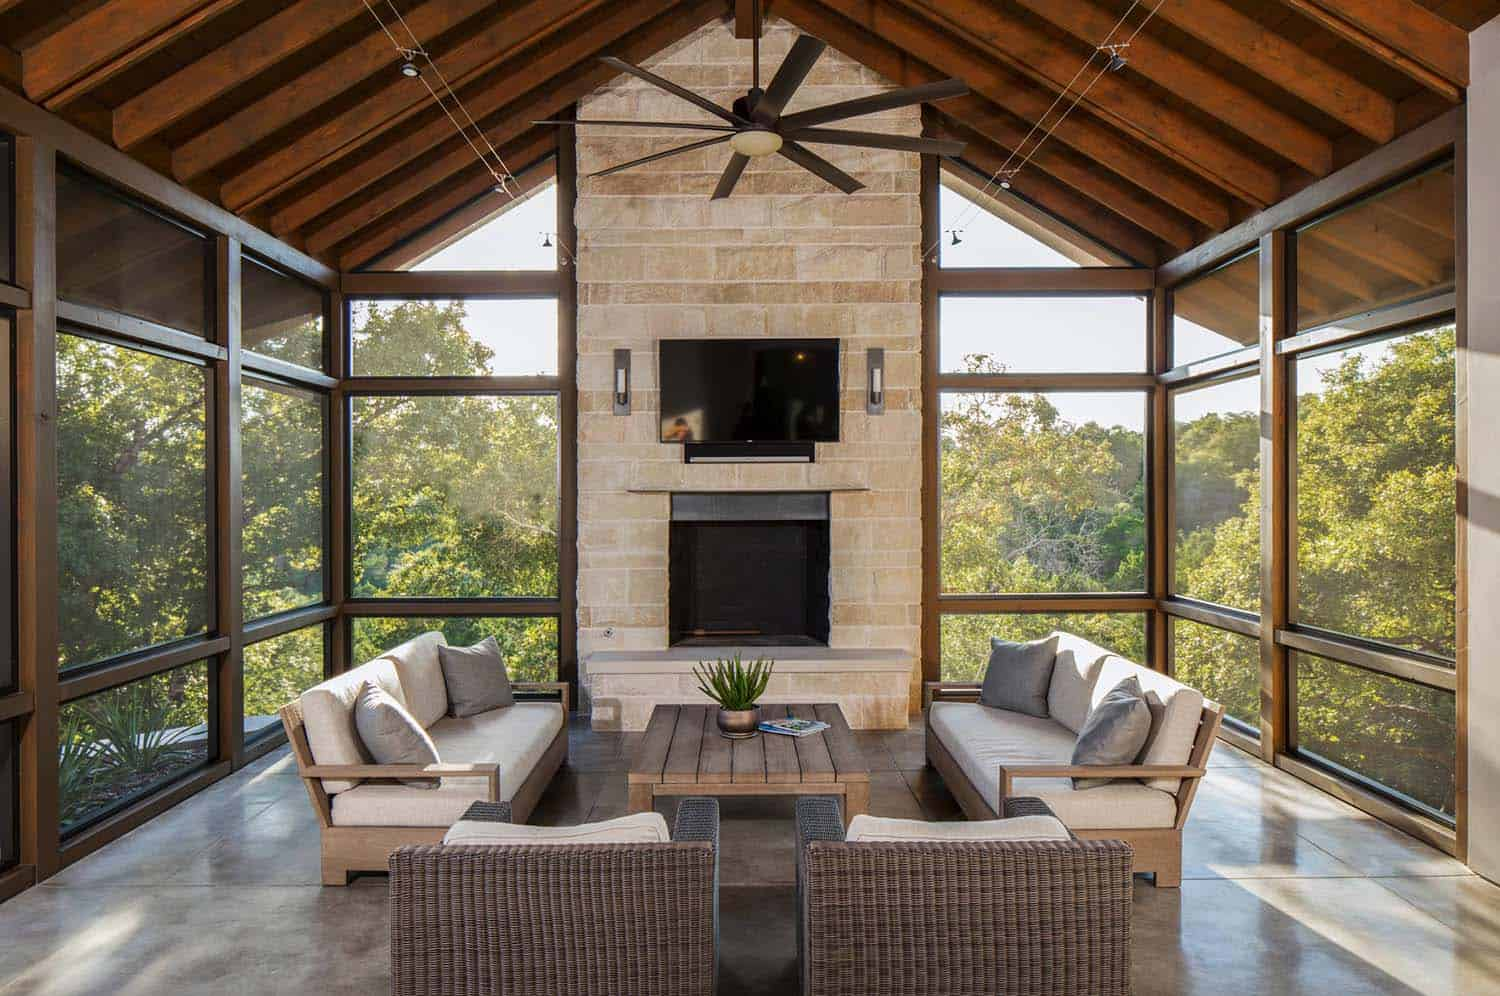 https://cdn.onekindesign.com/wp-content/uploads/2017/05/Screened-Porch-Design-Ideas-12-1-Kindesign.jpg